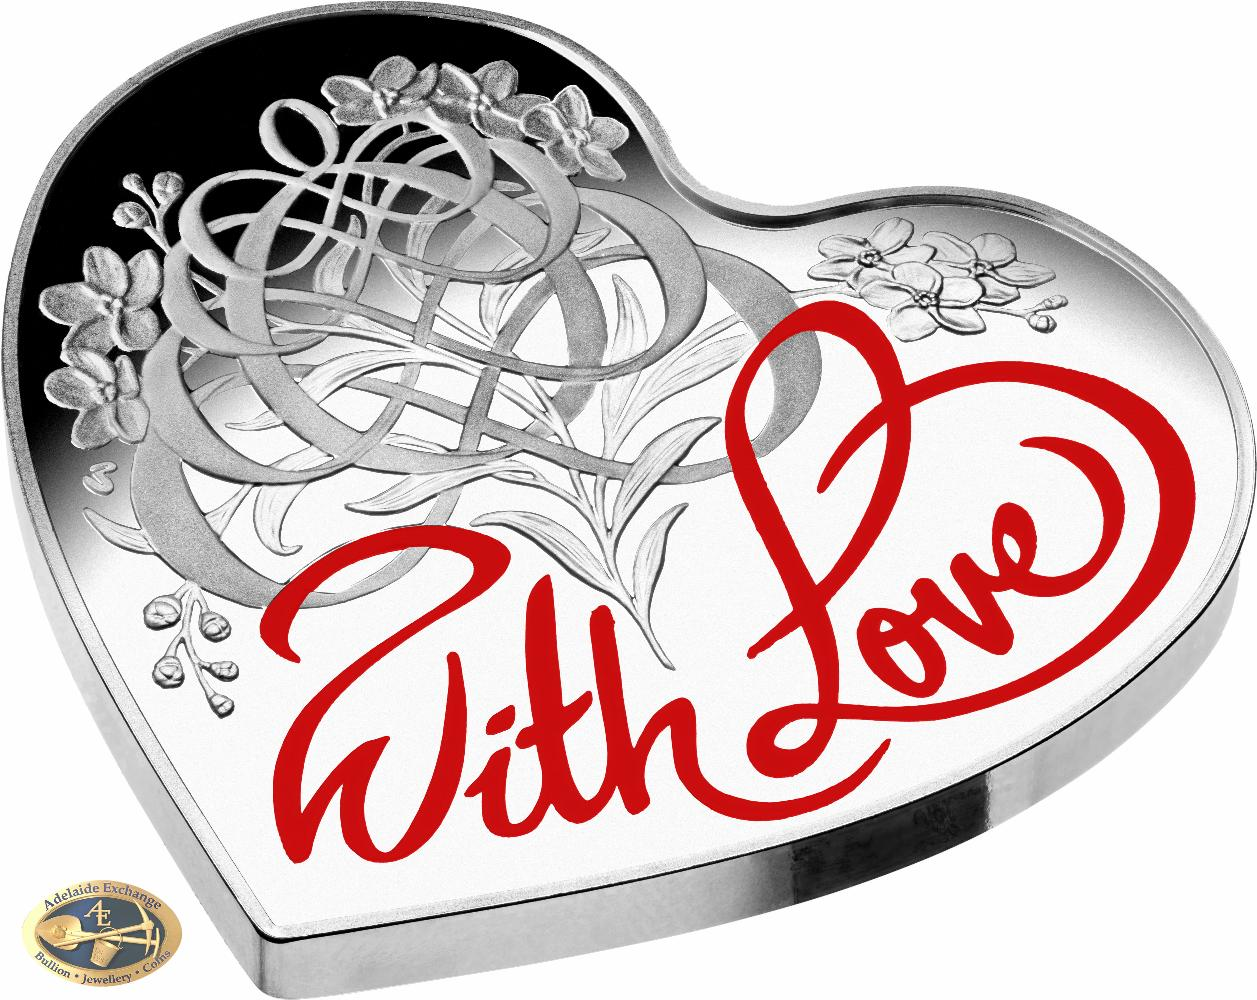 2016 With Love Heart Shaped 5 Silver Proof Coin